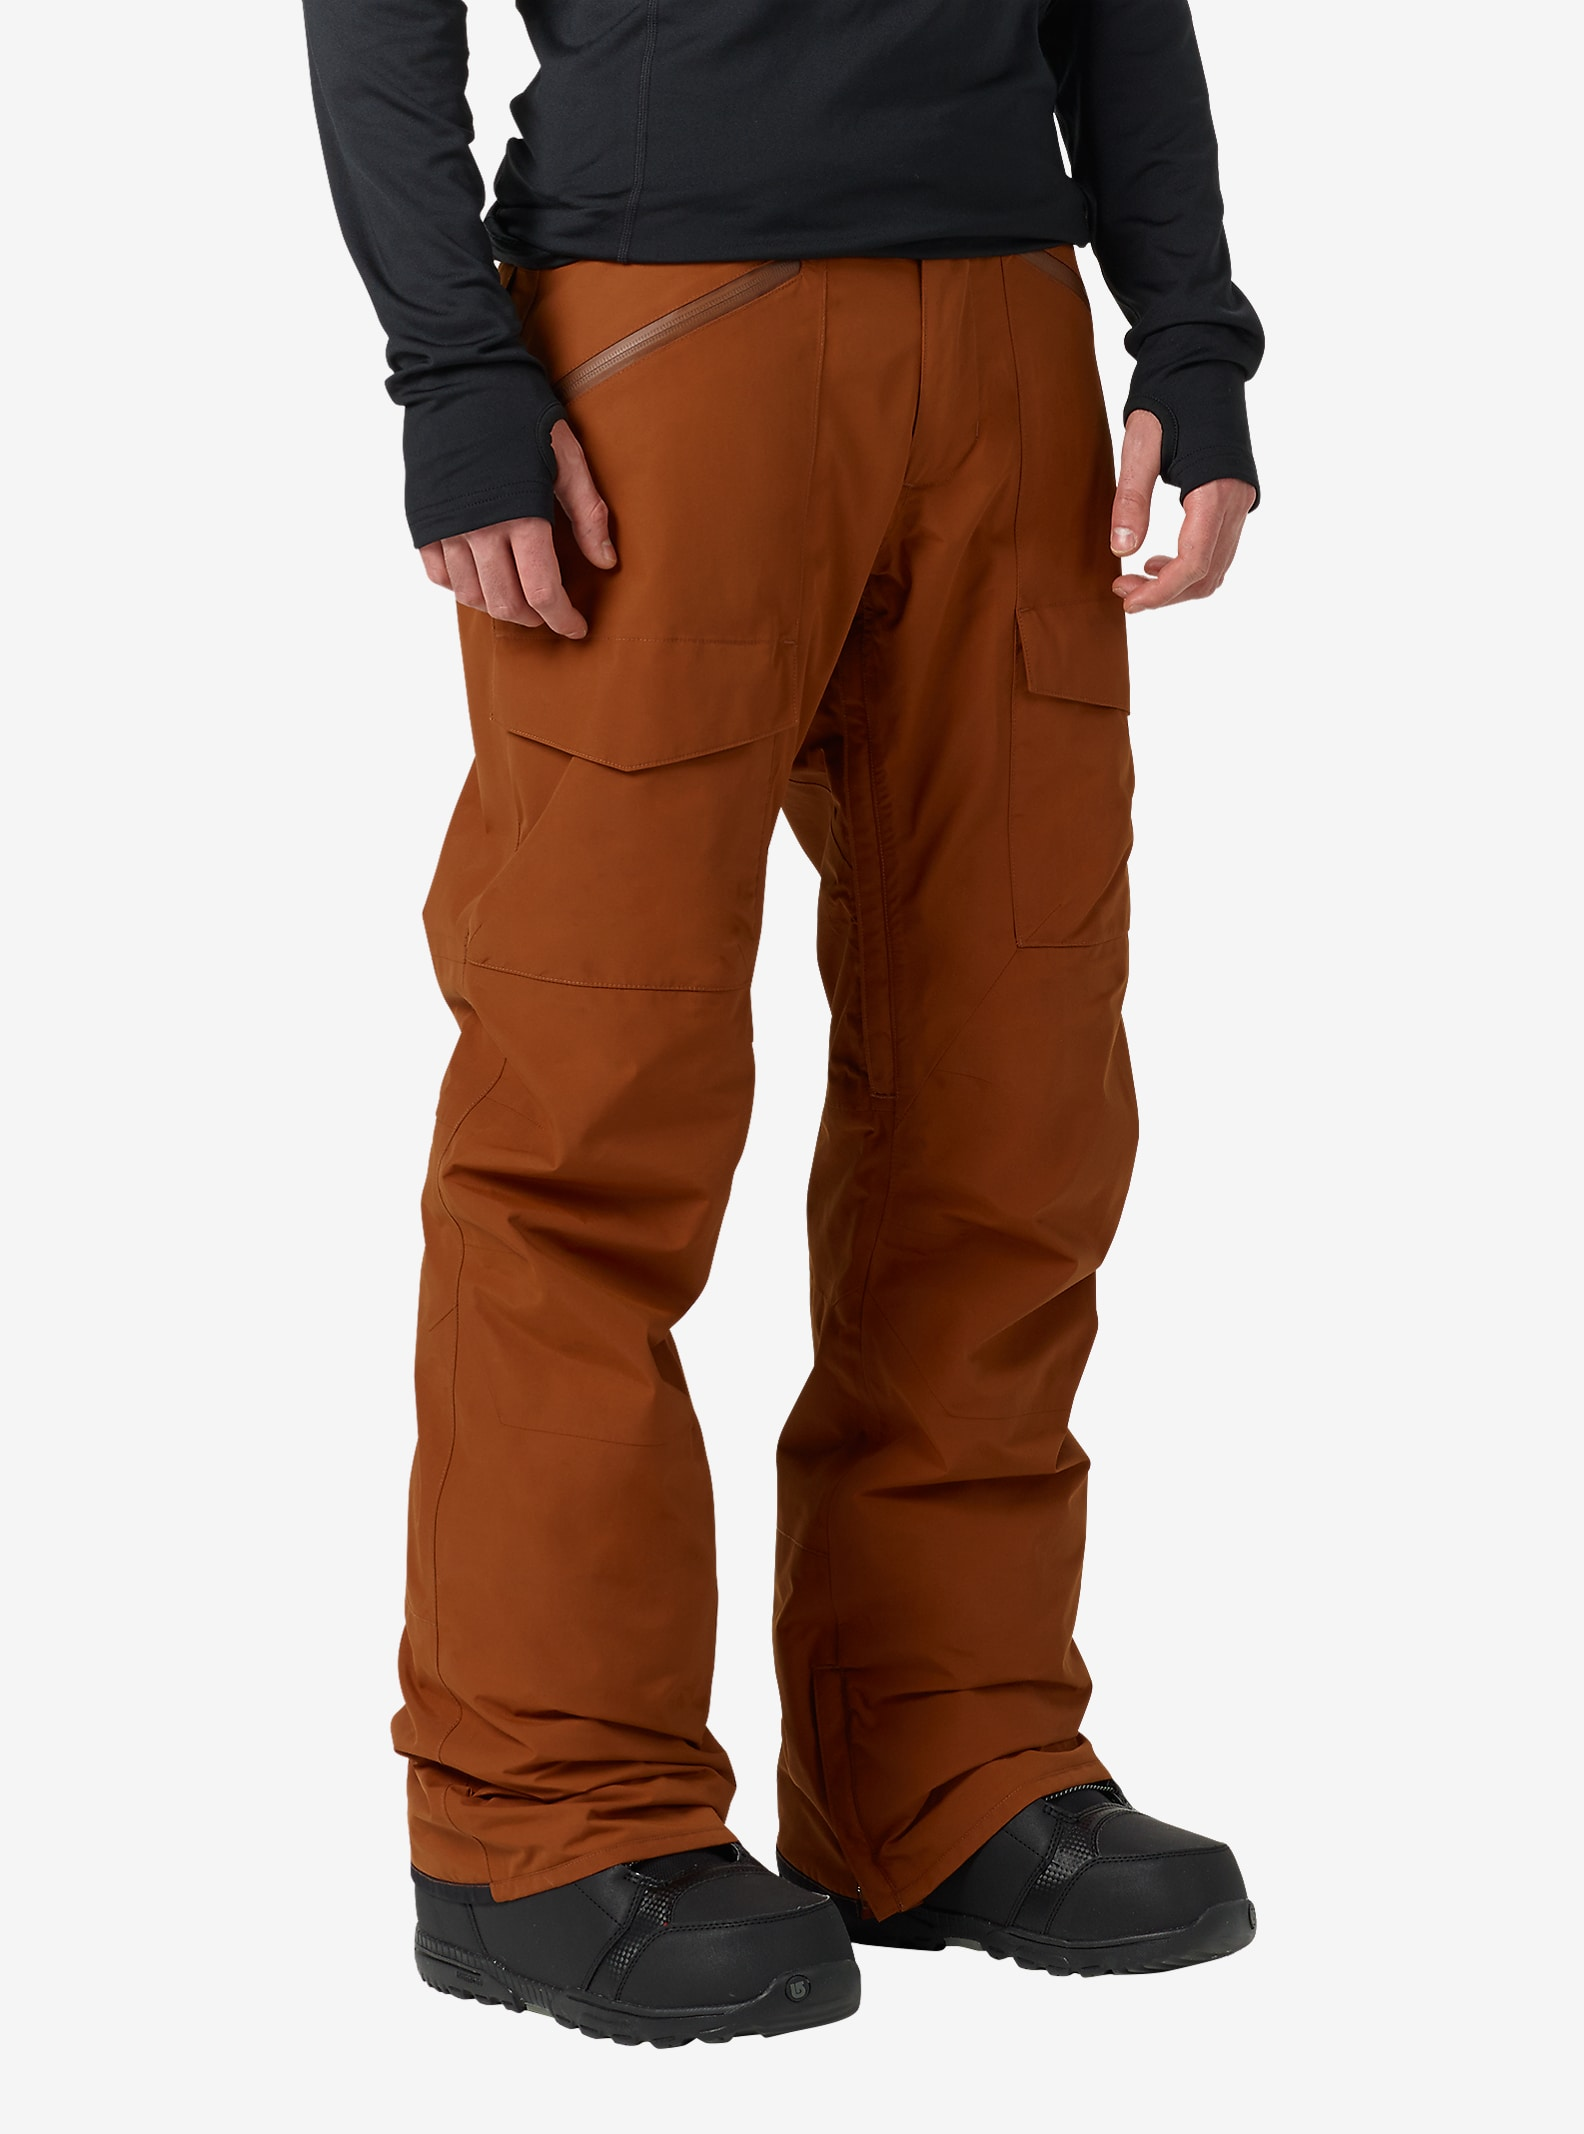 Burton Rotor Pant shown in True Penny